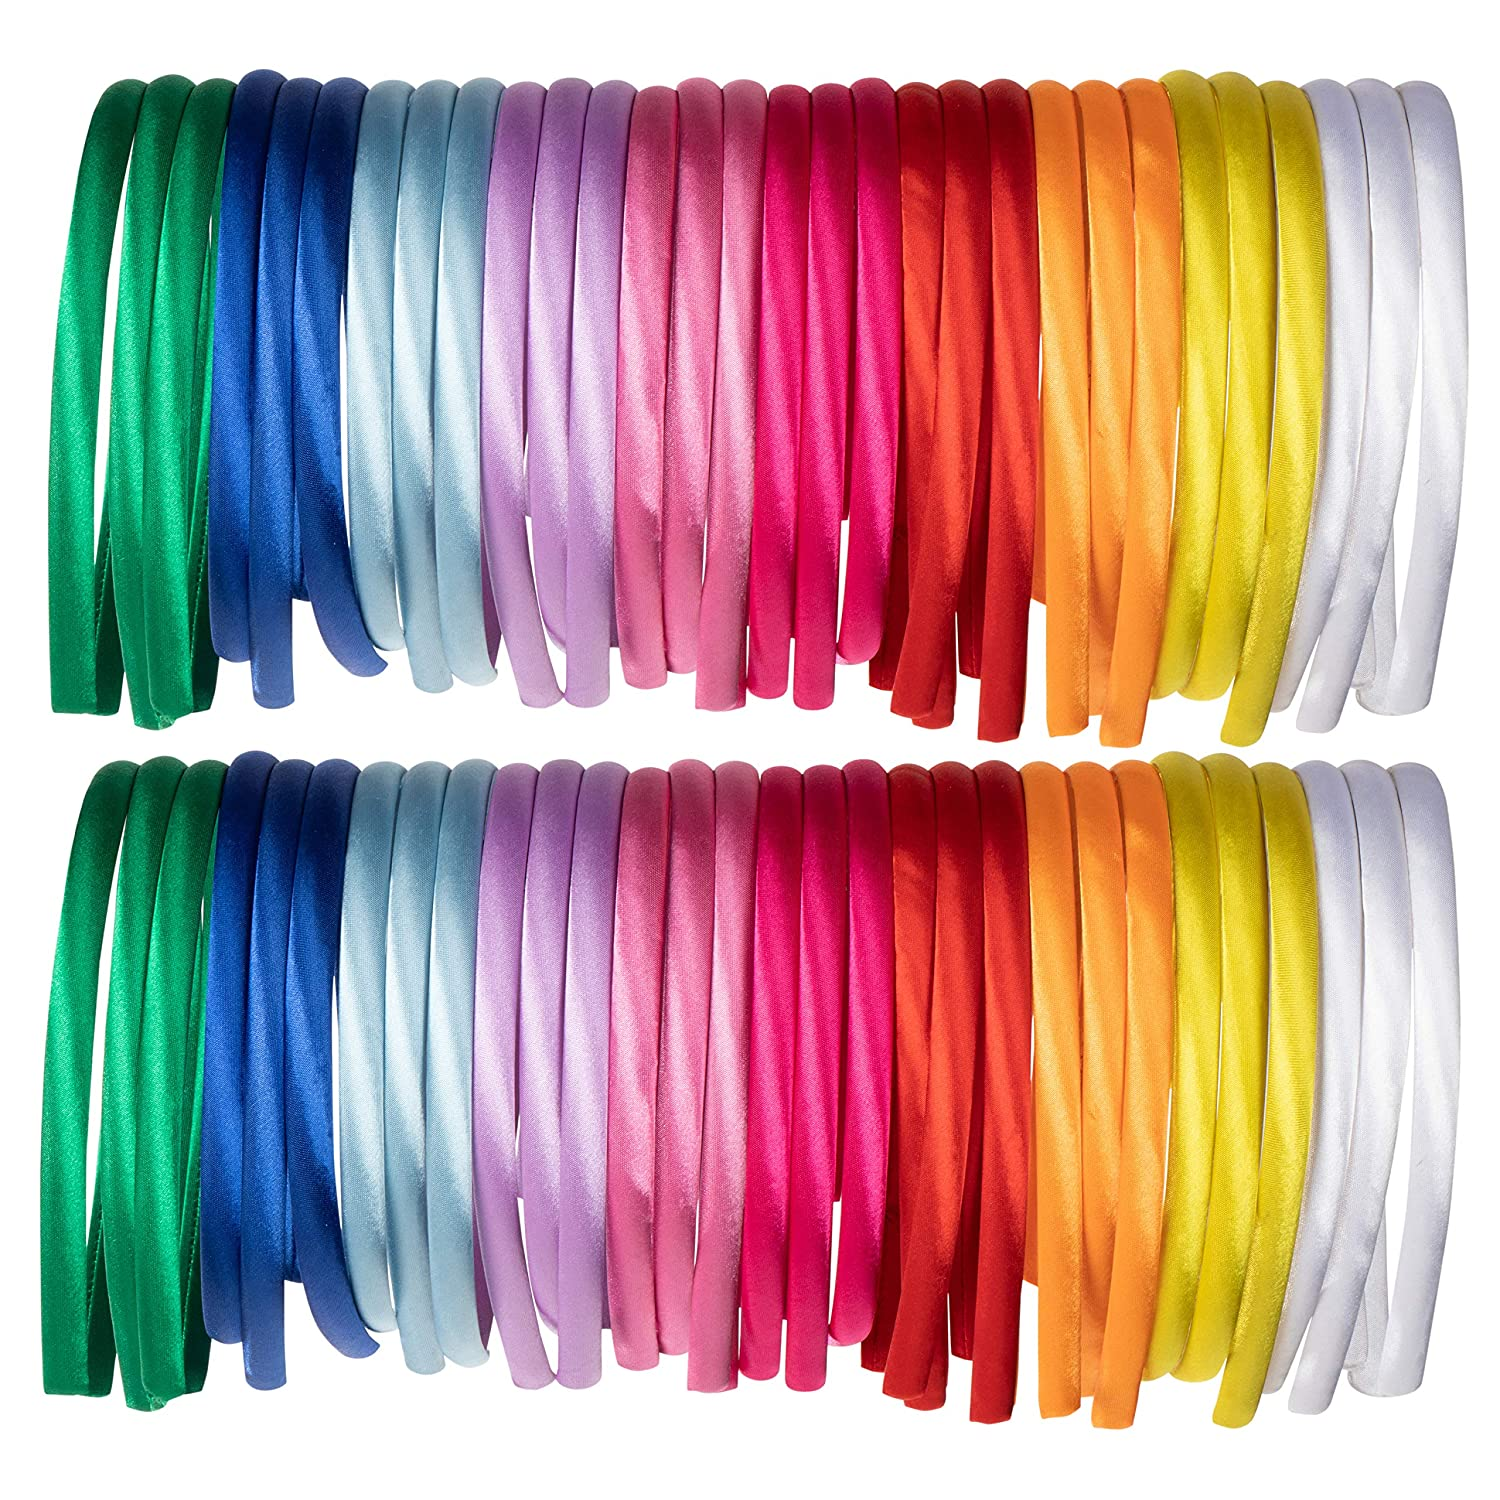 10PCS Satin Metal Craft Headband Mixed Color Band  HairCovered 5mm